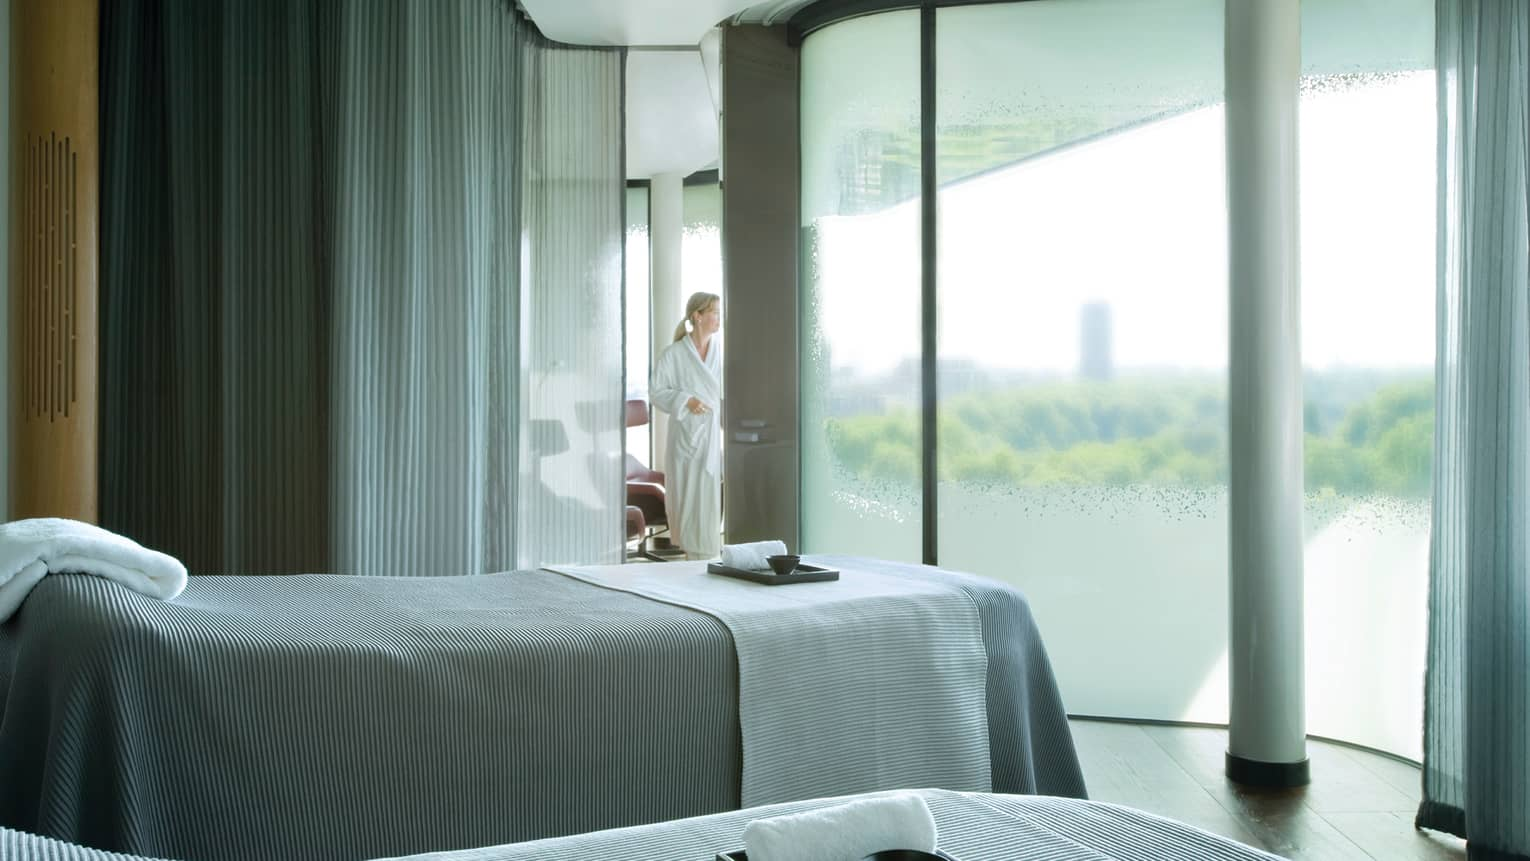 Skyline Spa, woman in white robe behind frosted glass wall, two massage beds